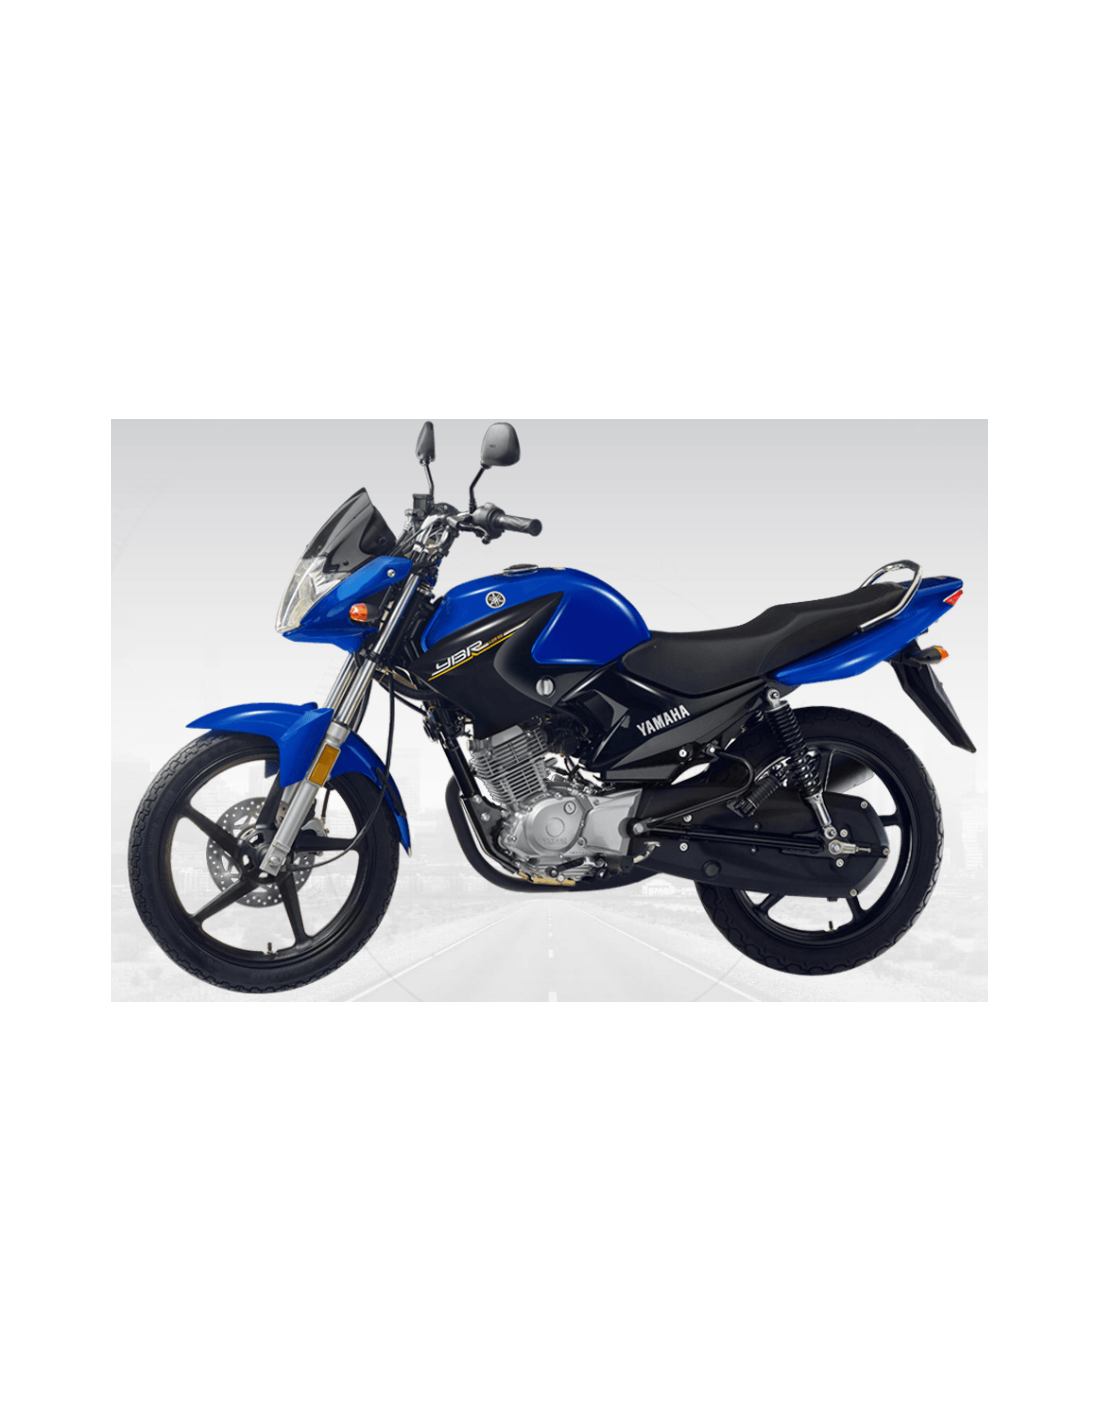 Yamaha YBR 125 Price in Pakistan, Rating, Reviews and Pictures